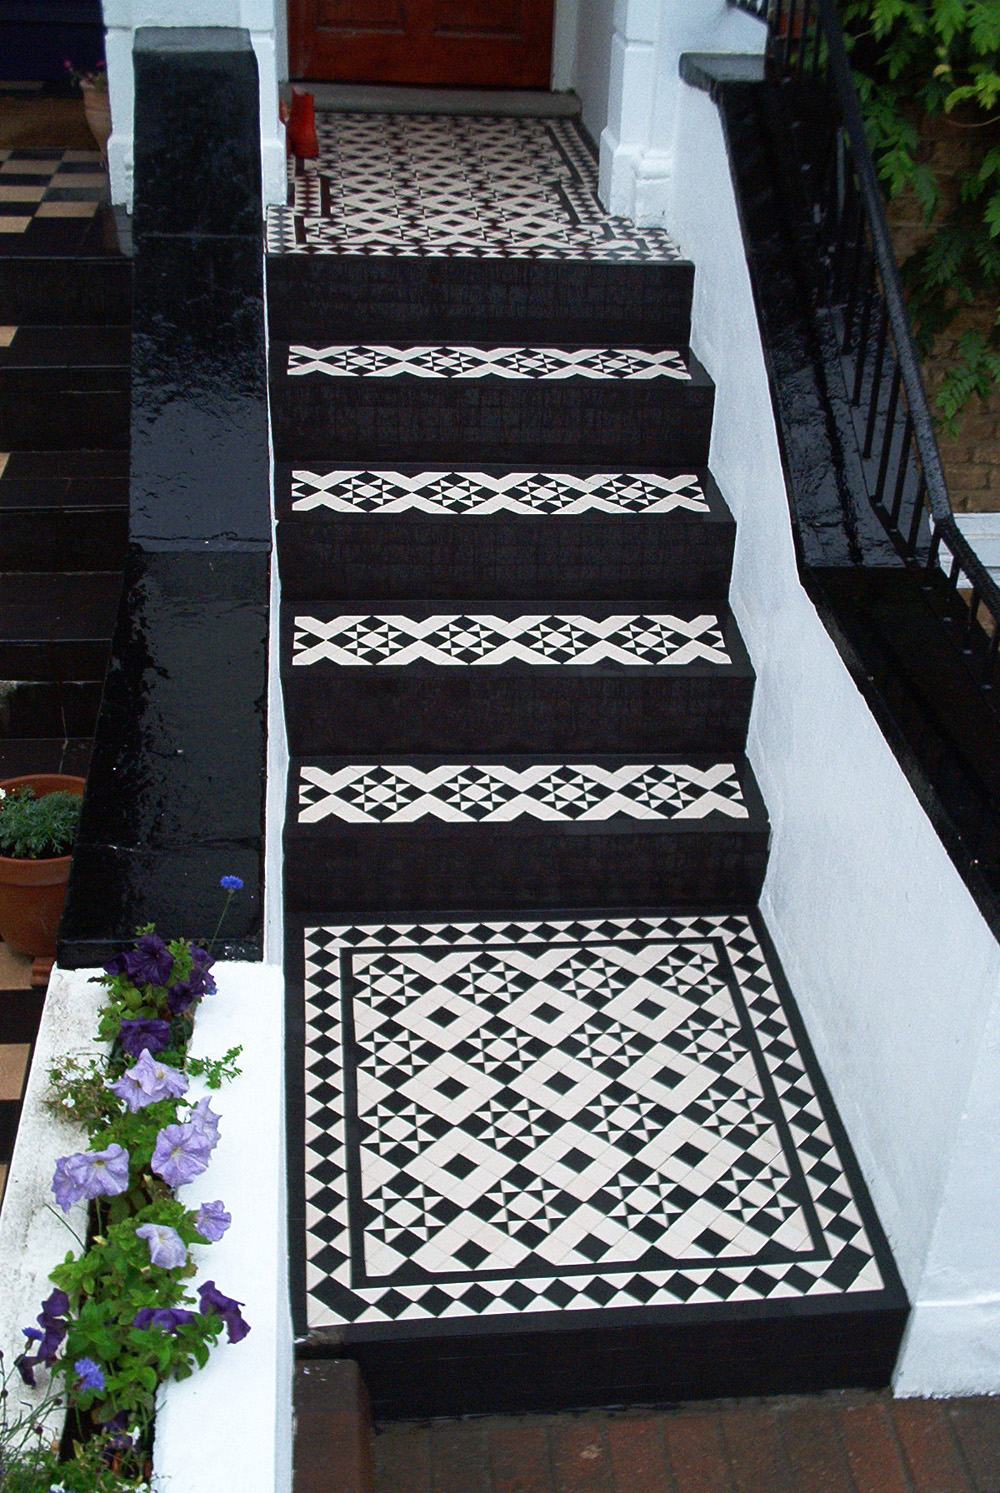 Blenstone Stone Specialists Victorian Mosaics